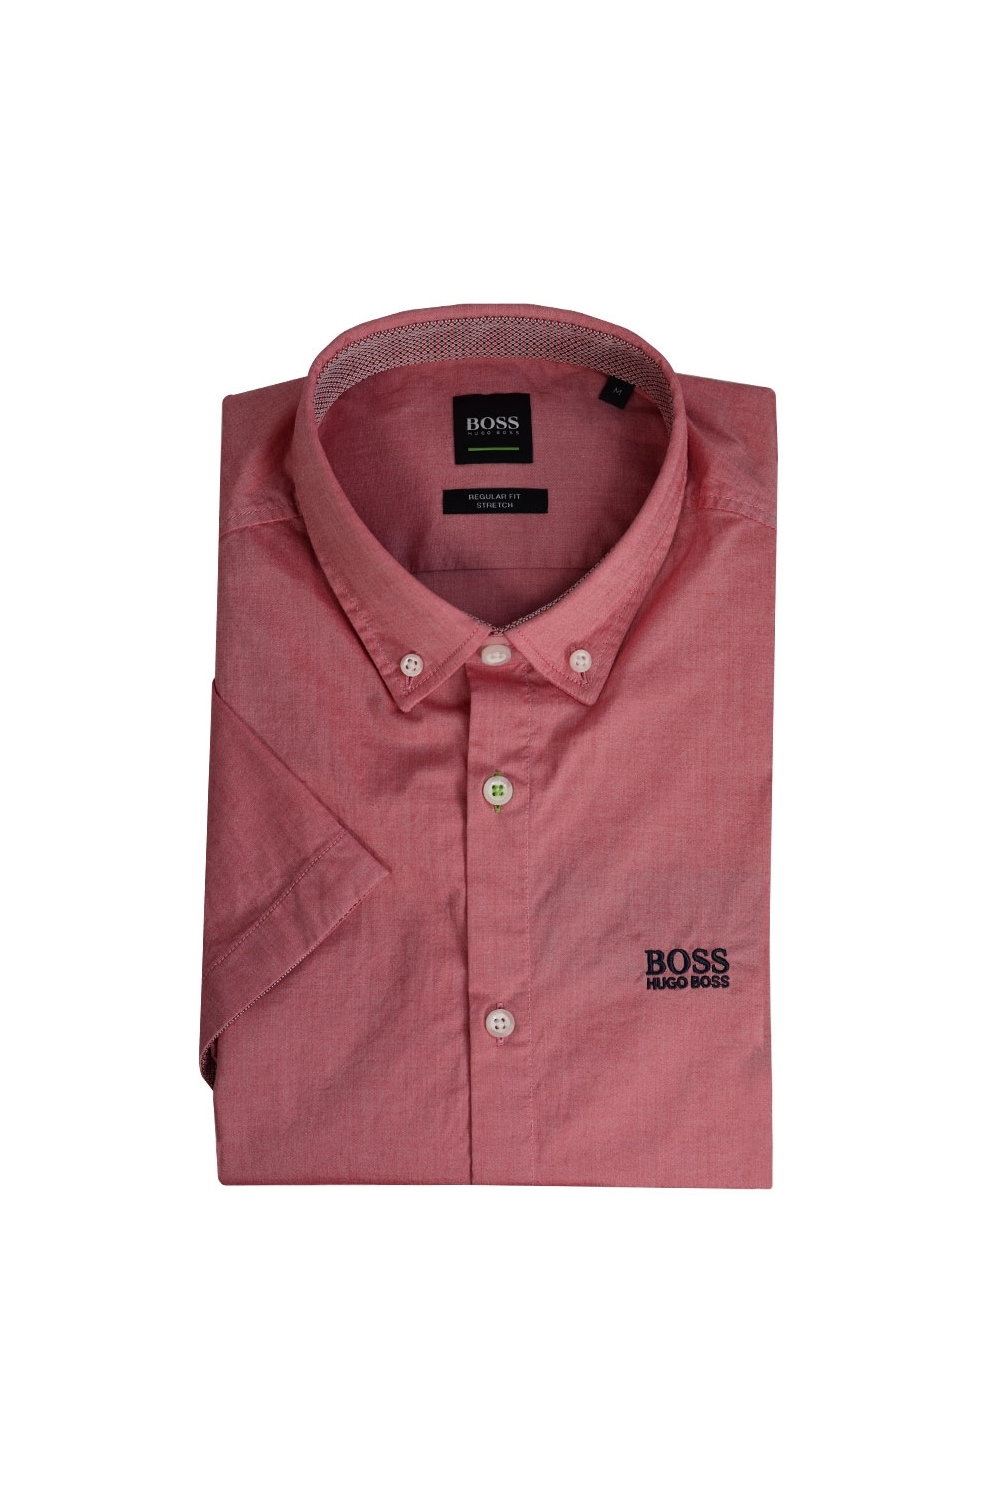 3cddaac6 Short Sleeve Shirt Hugo Boss – EDGE Engineering and Consulting Limited